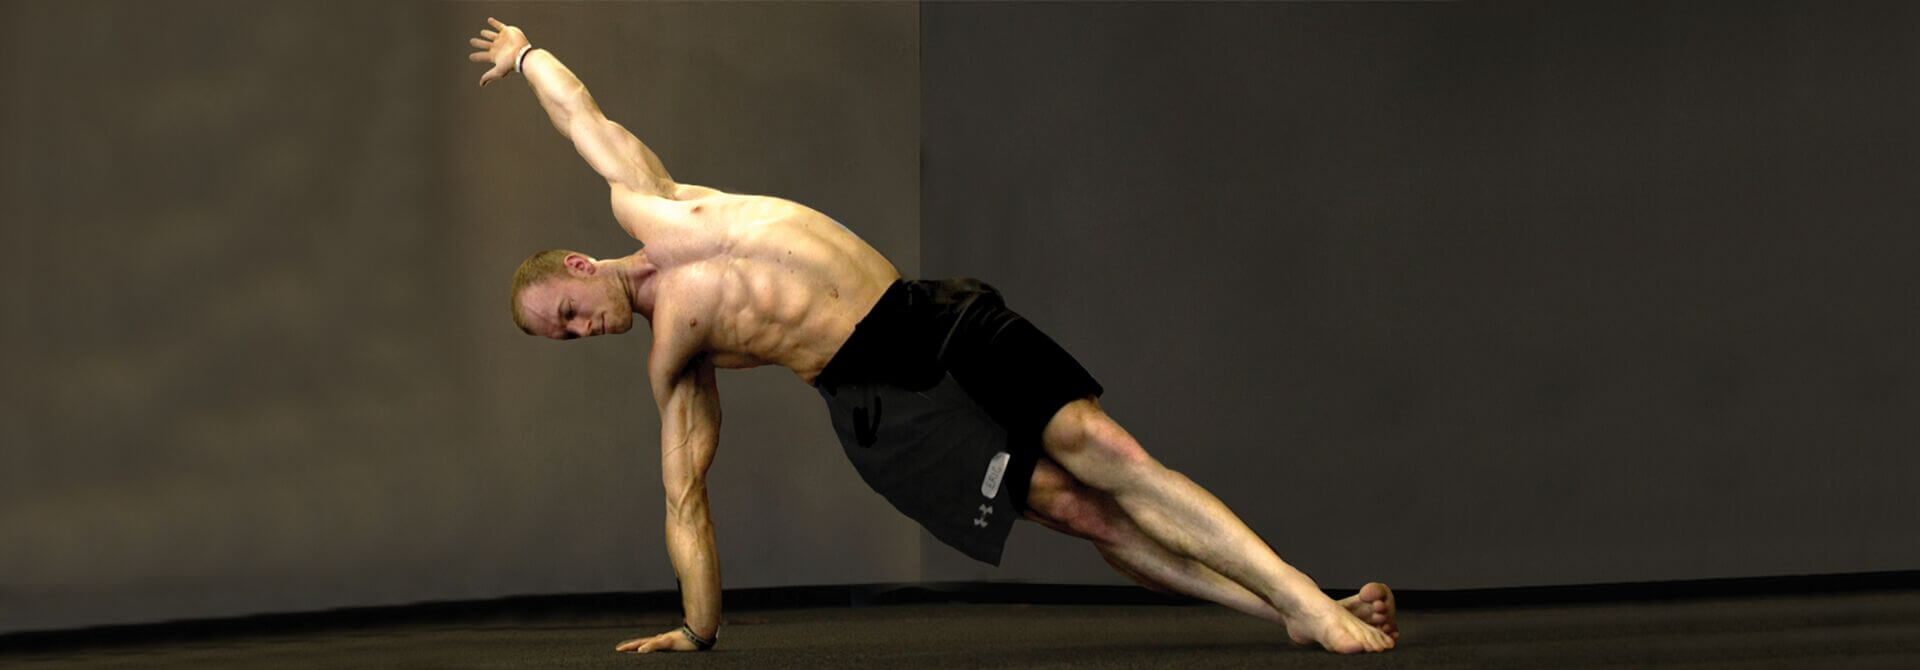 GymnasticBodies athlete demonstrates how body weight and side planks can build obliques for a more stable core.